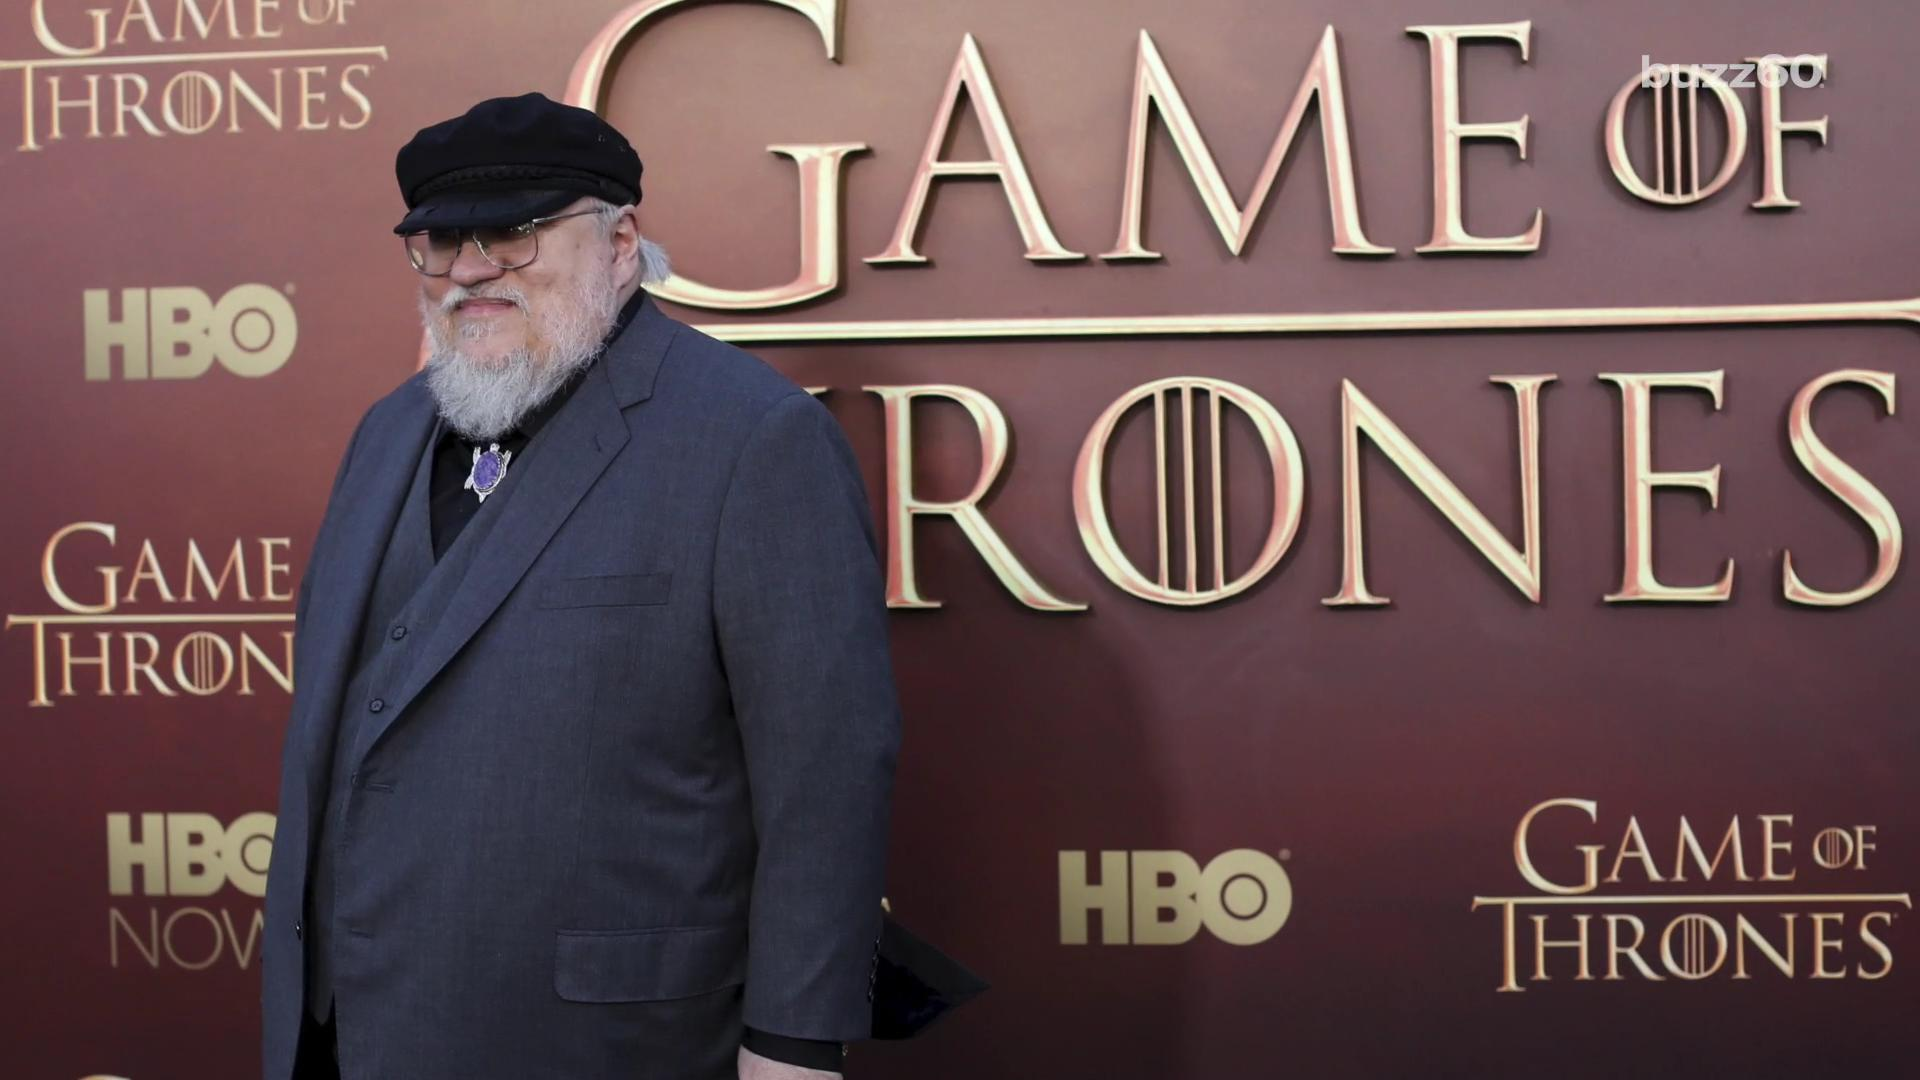 George R.R. Martin says there isn't going to be a 'Game of Thrones' movie... yet